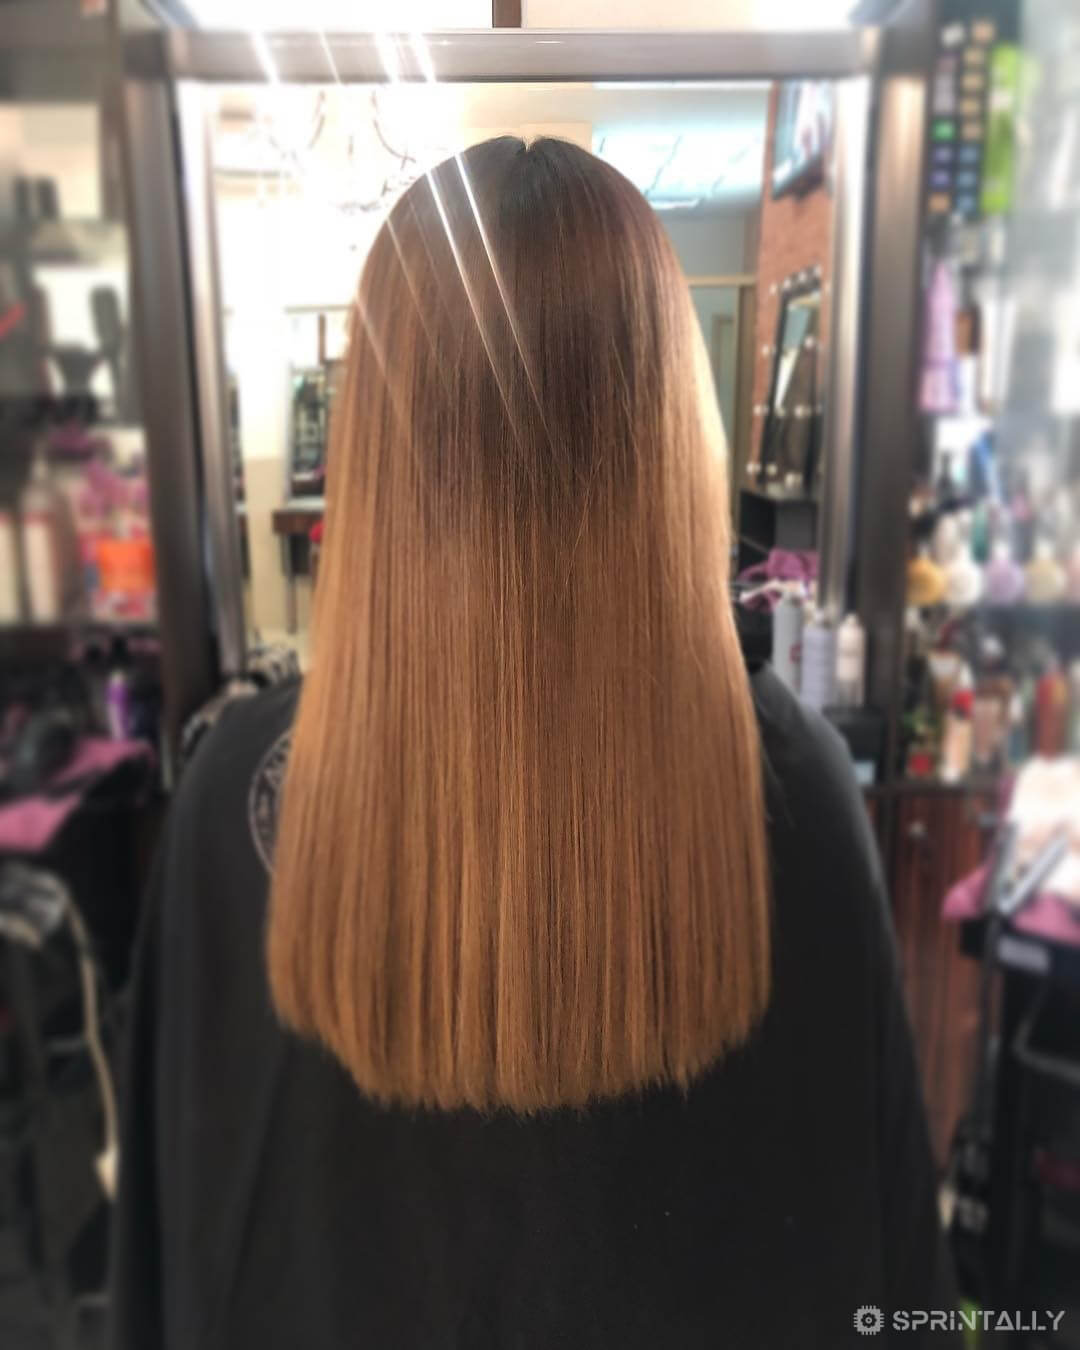 Hair styling with straight cut